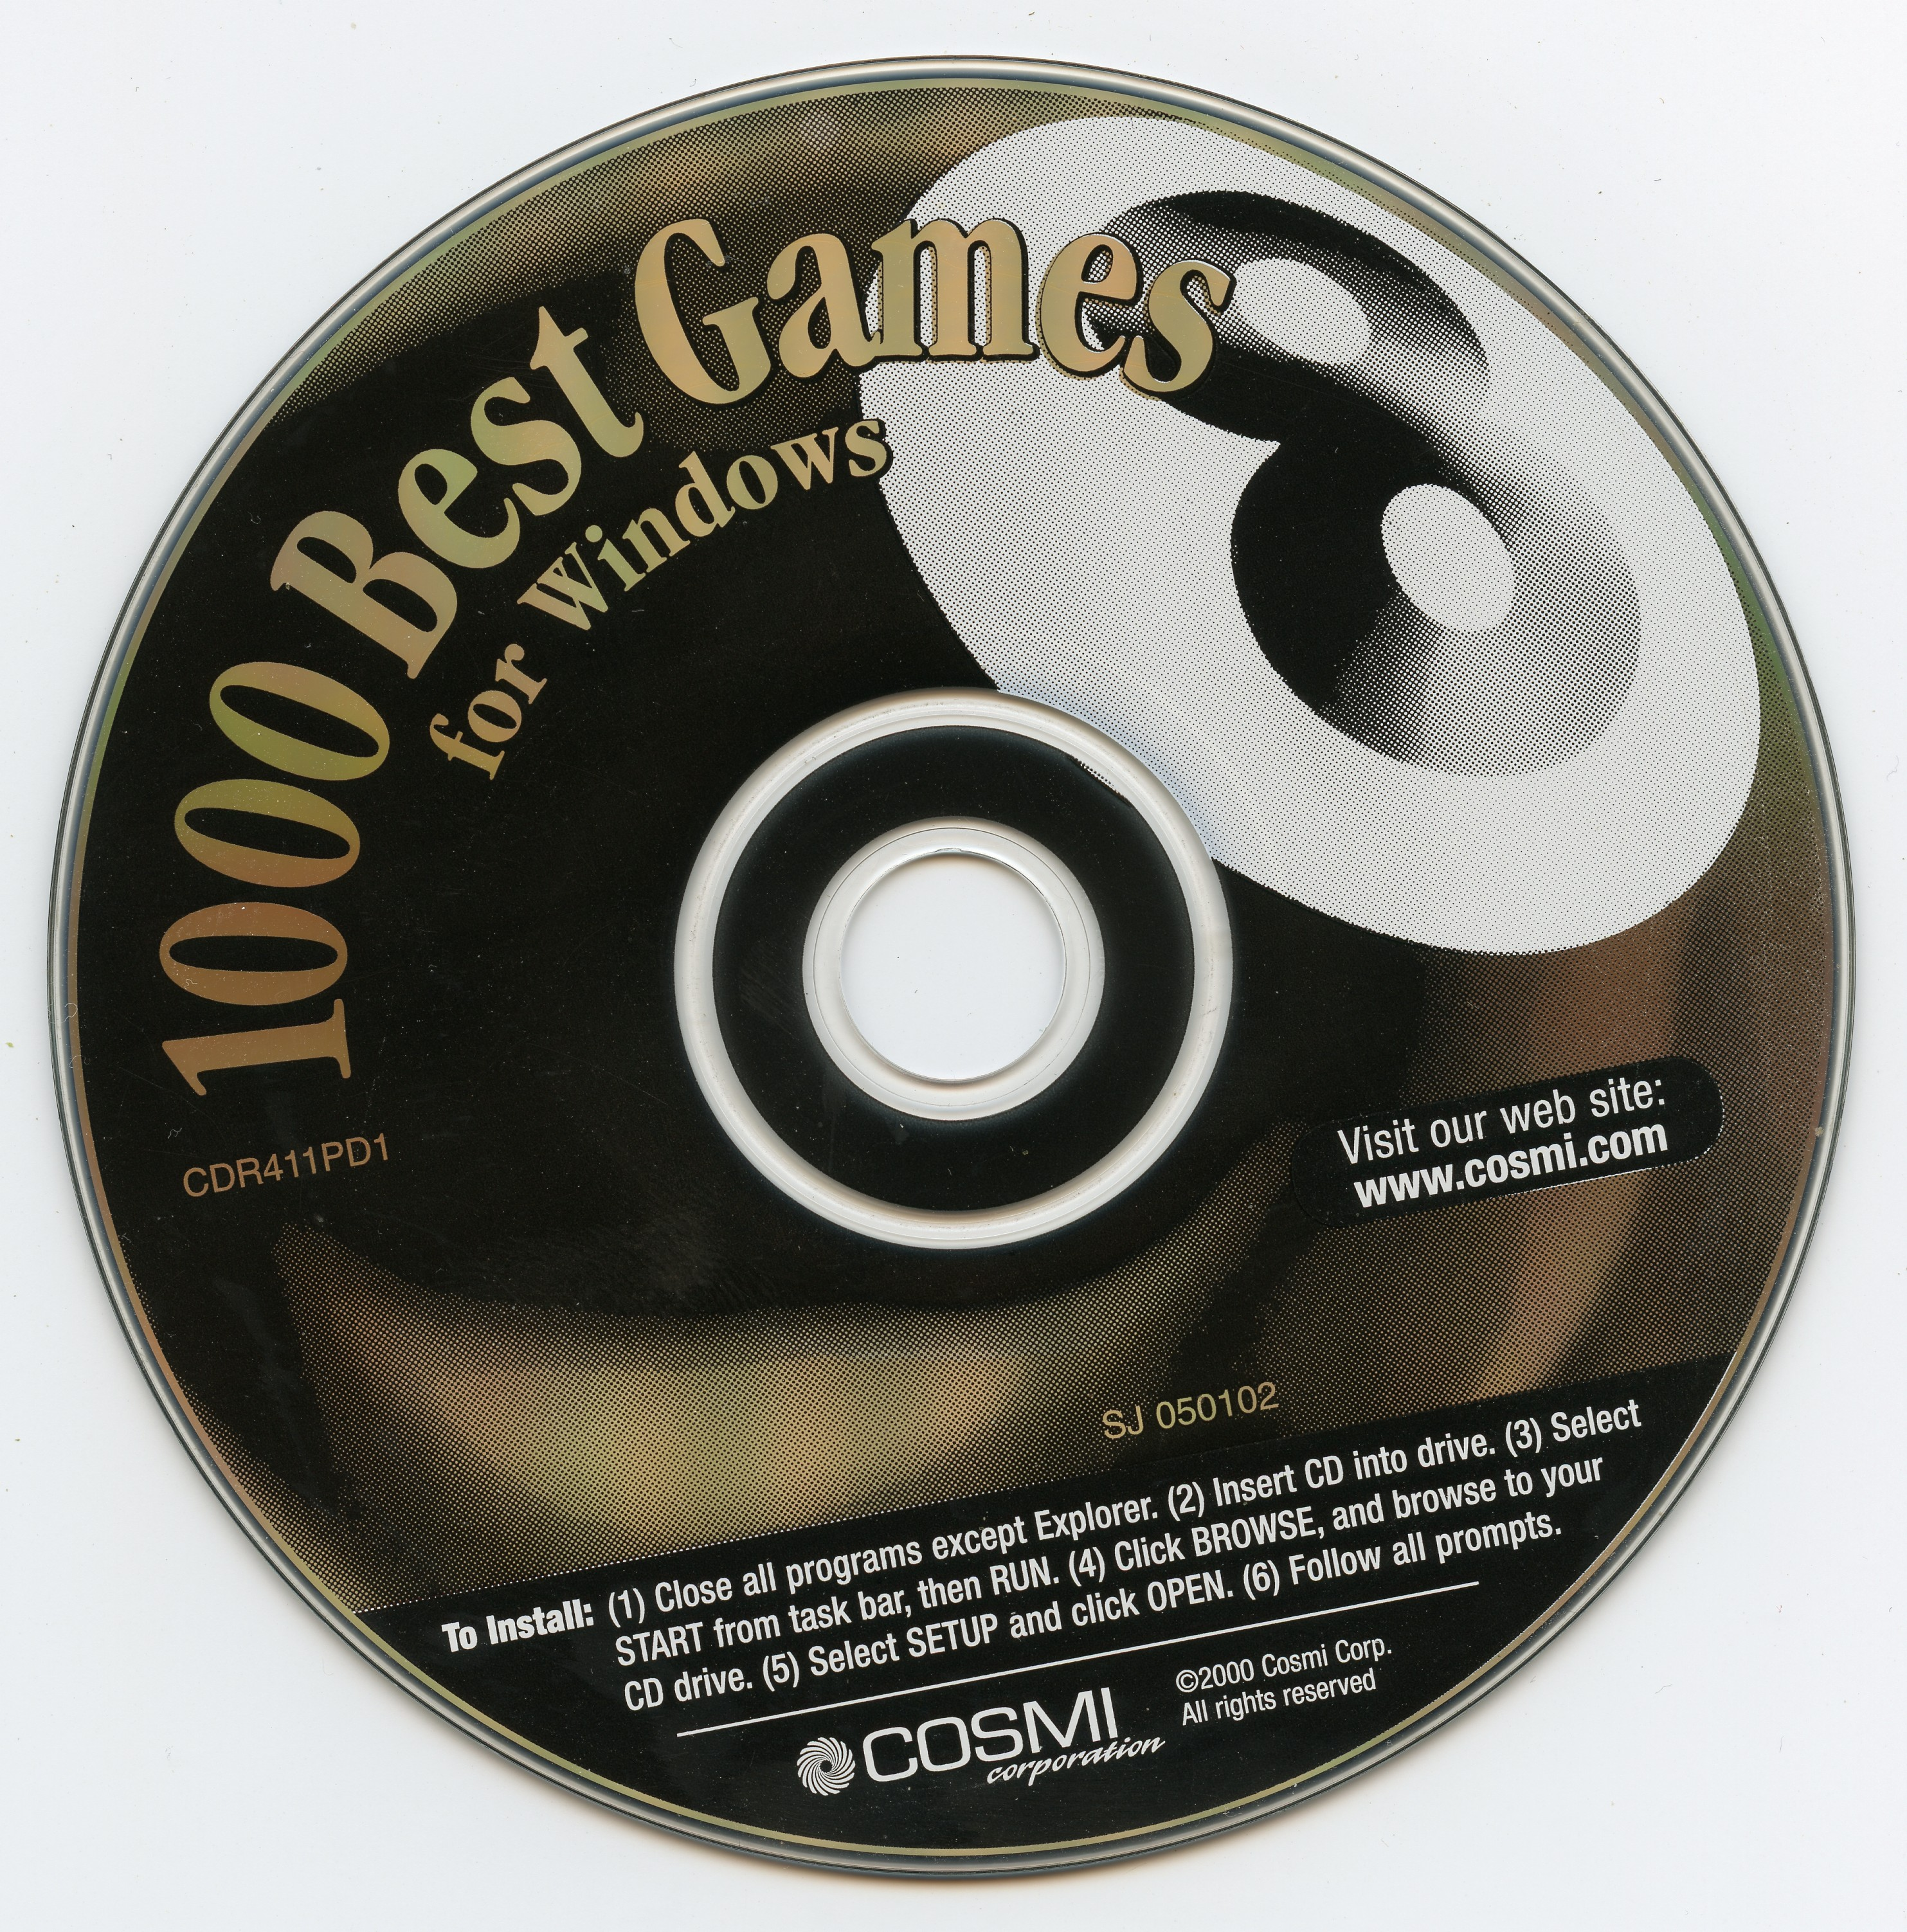 1000 Best Games for Windows (CDR411PD1) (COSMI) (2000